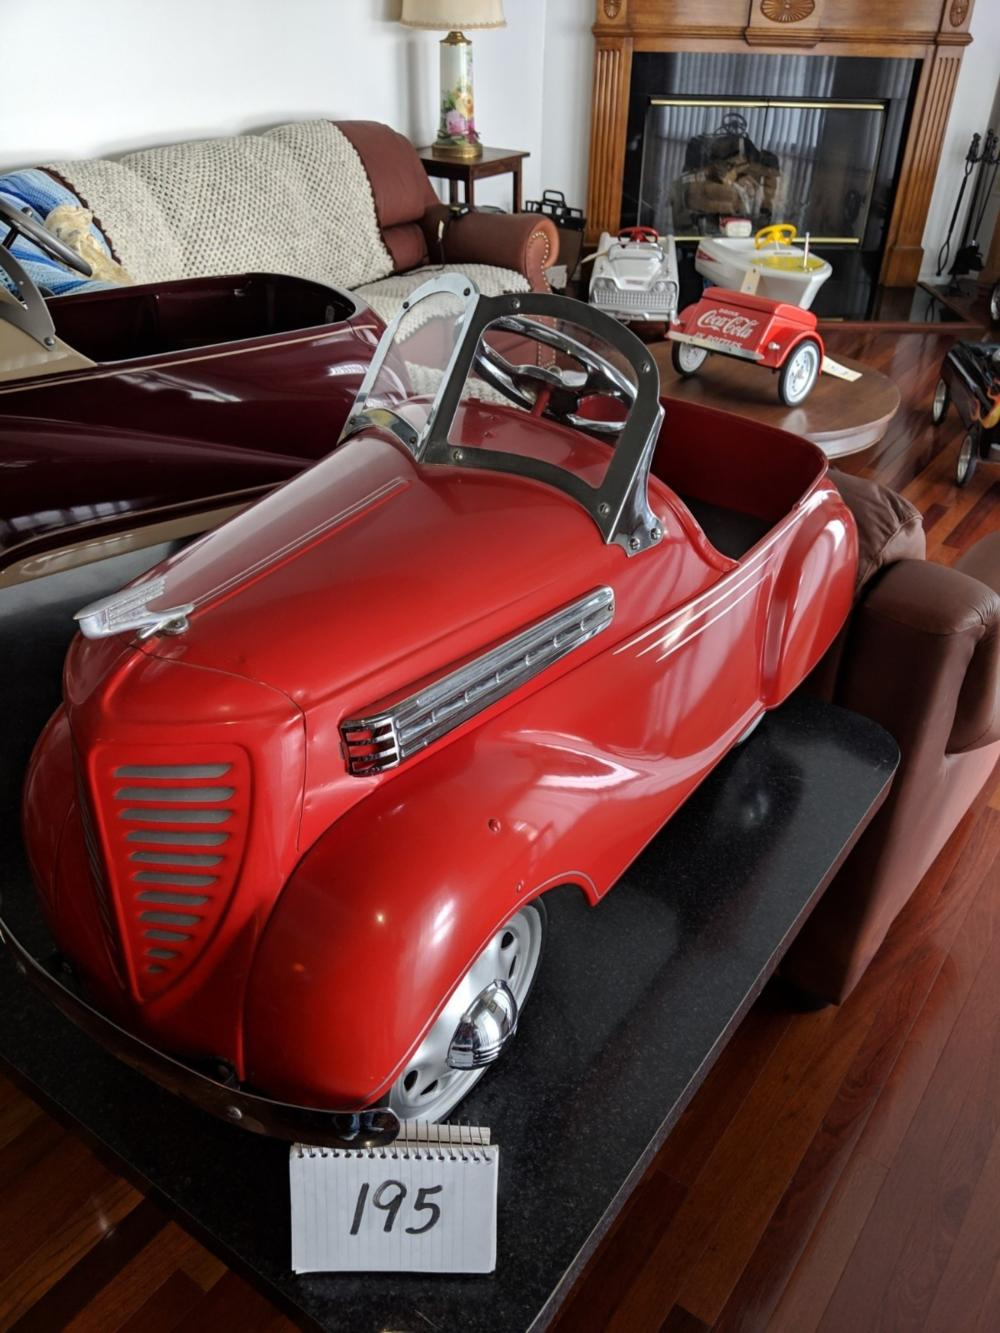 1938 M10 Dodge Pedal Car Steelcraft Possible Early Restoration